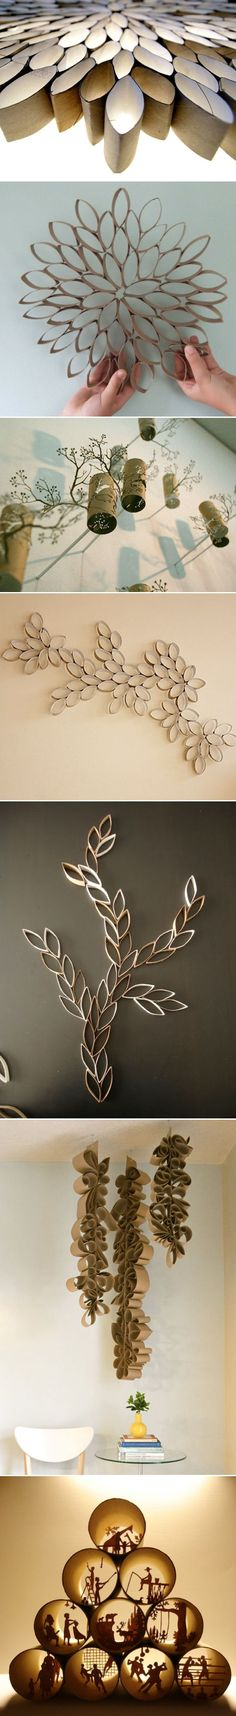 Toilet Paper Roll Crafting.....the bottom image is definitely something I would try.